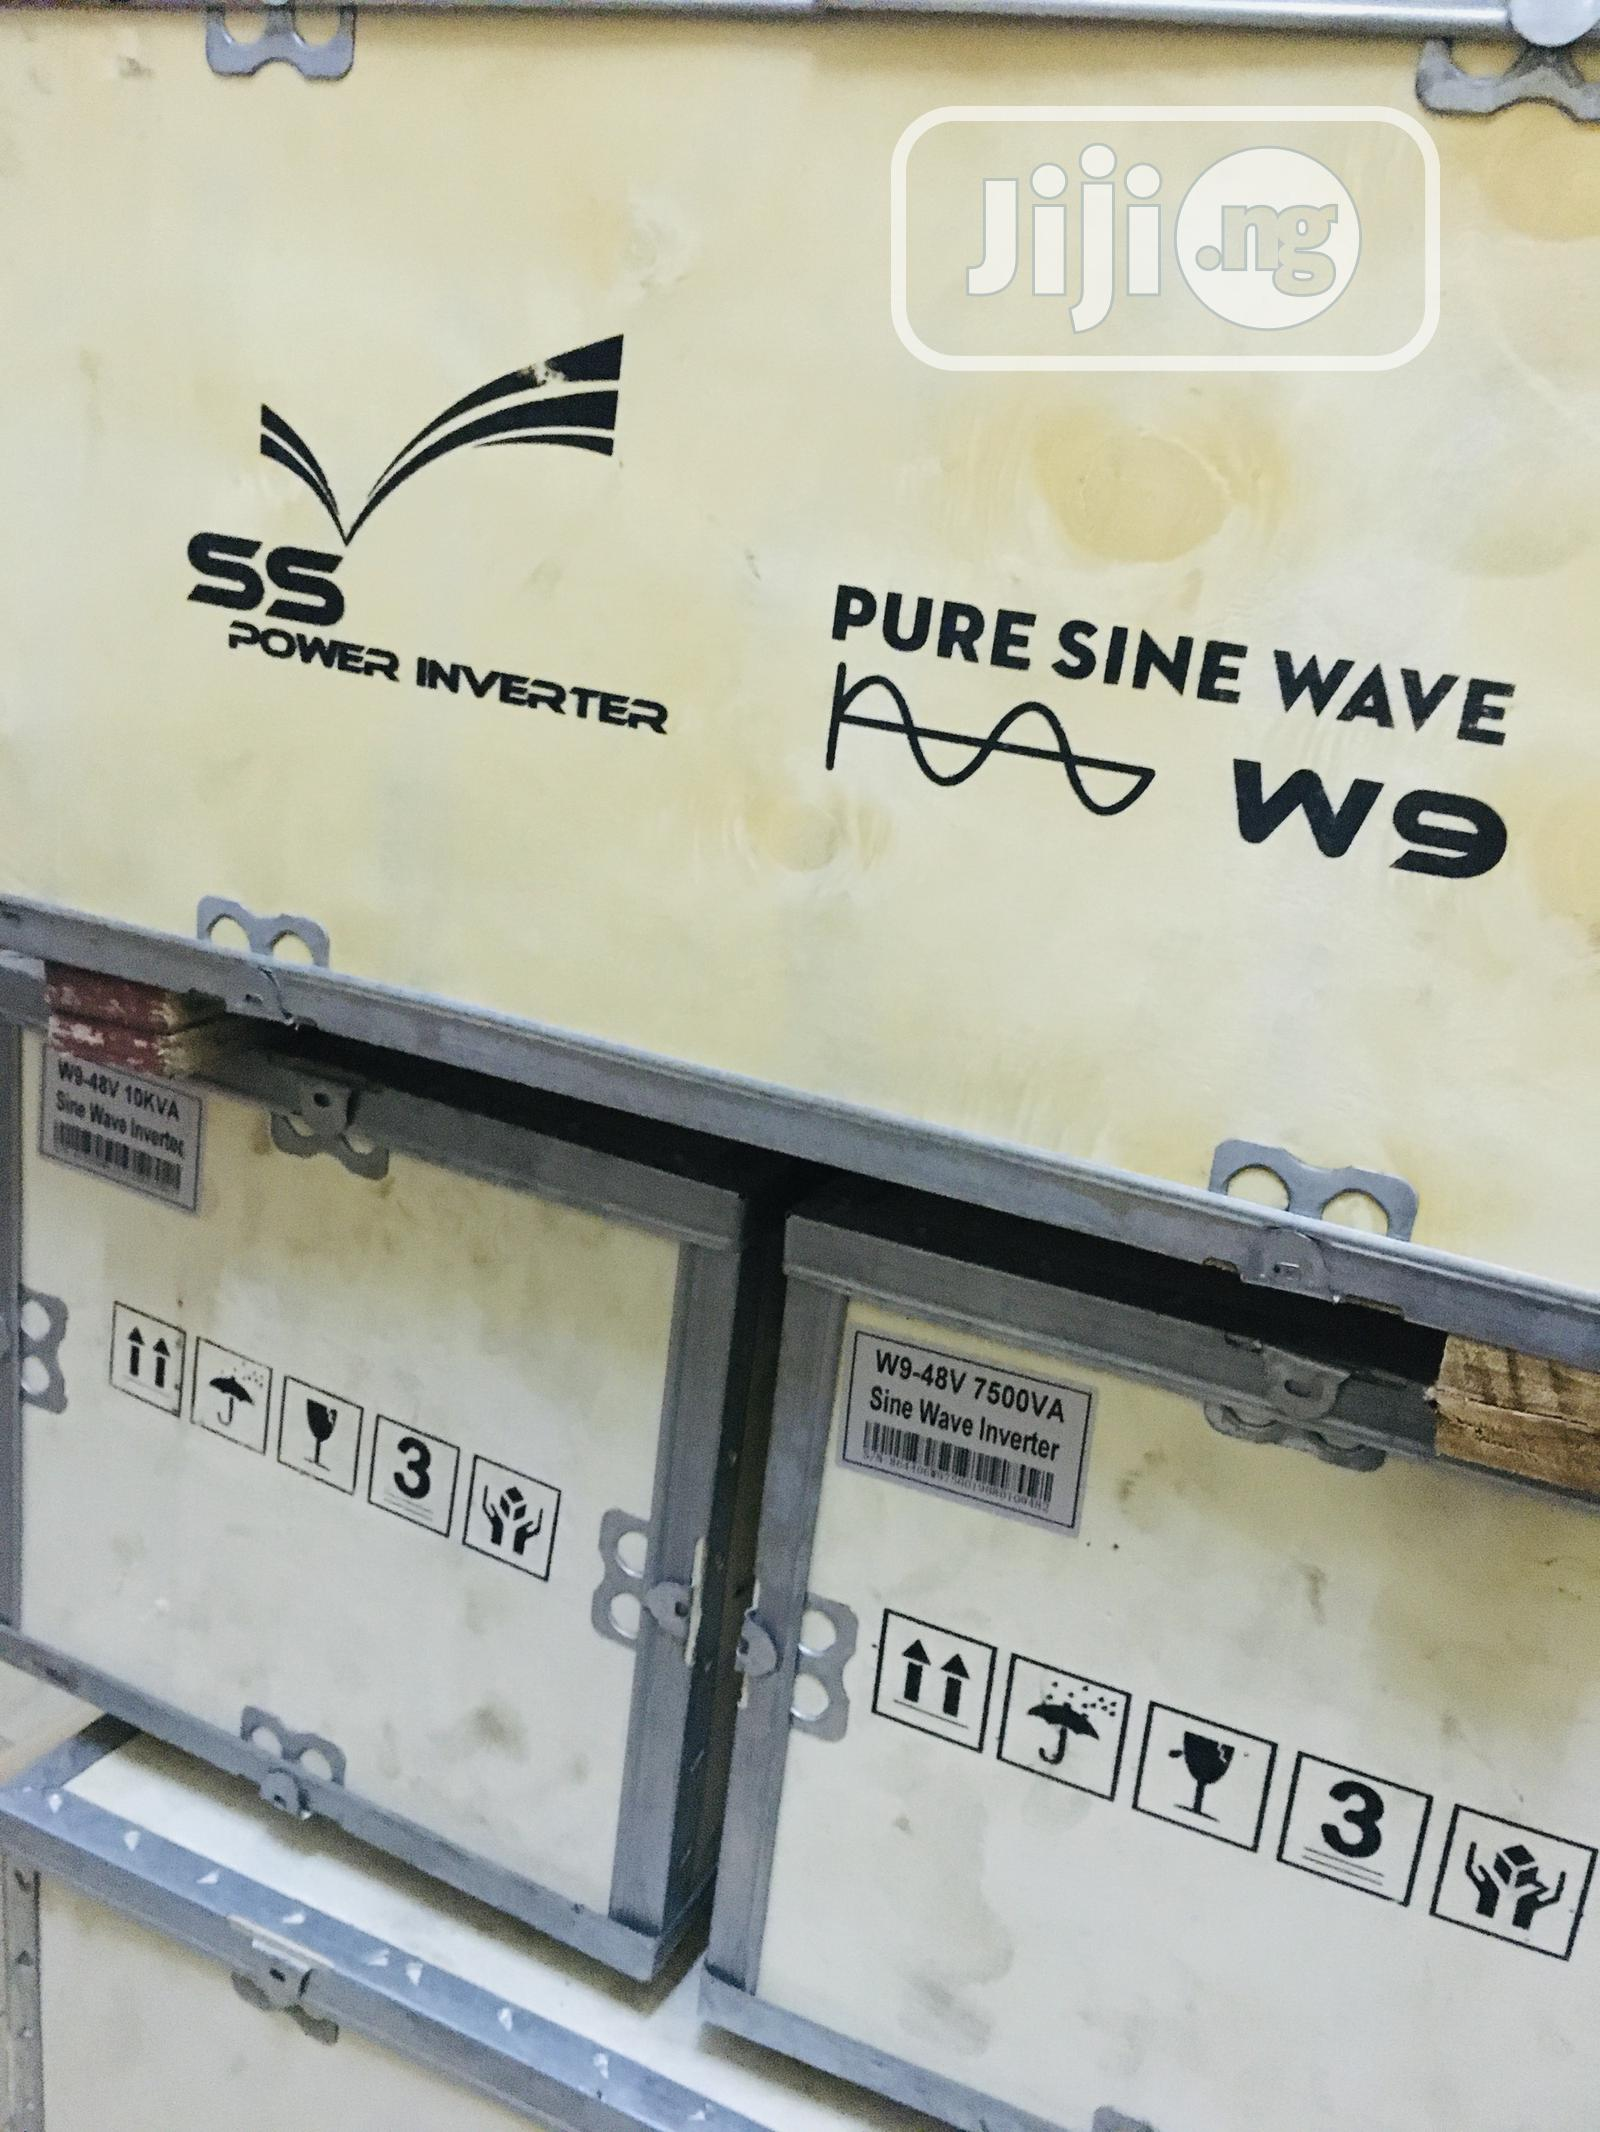 7.5kva 48v Ss Power Pure Sine Wave Inverter Availablewith 1yr Waranty